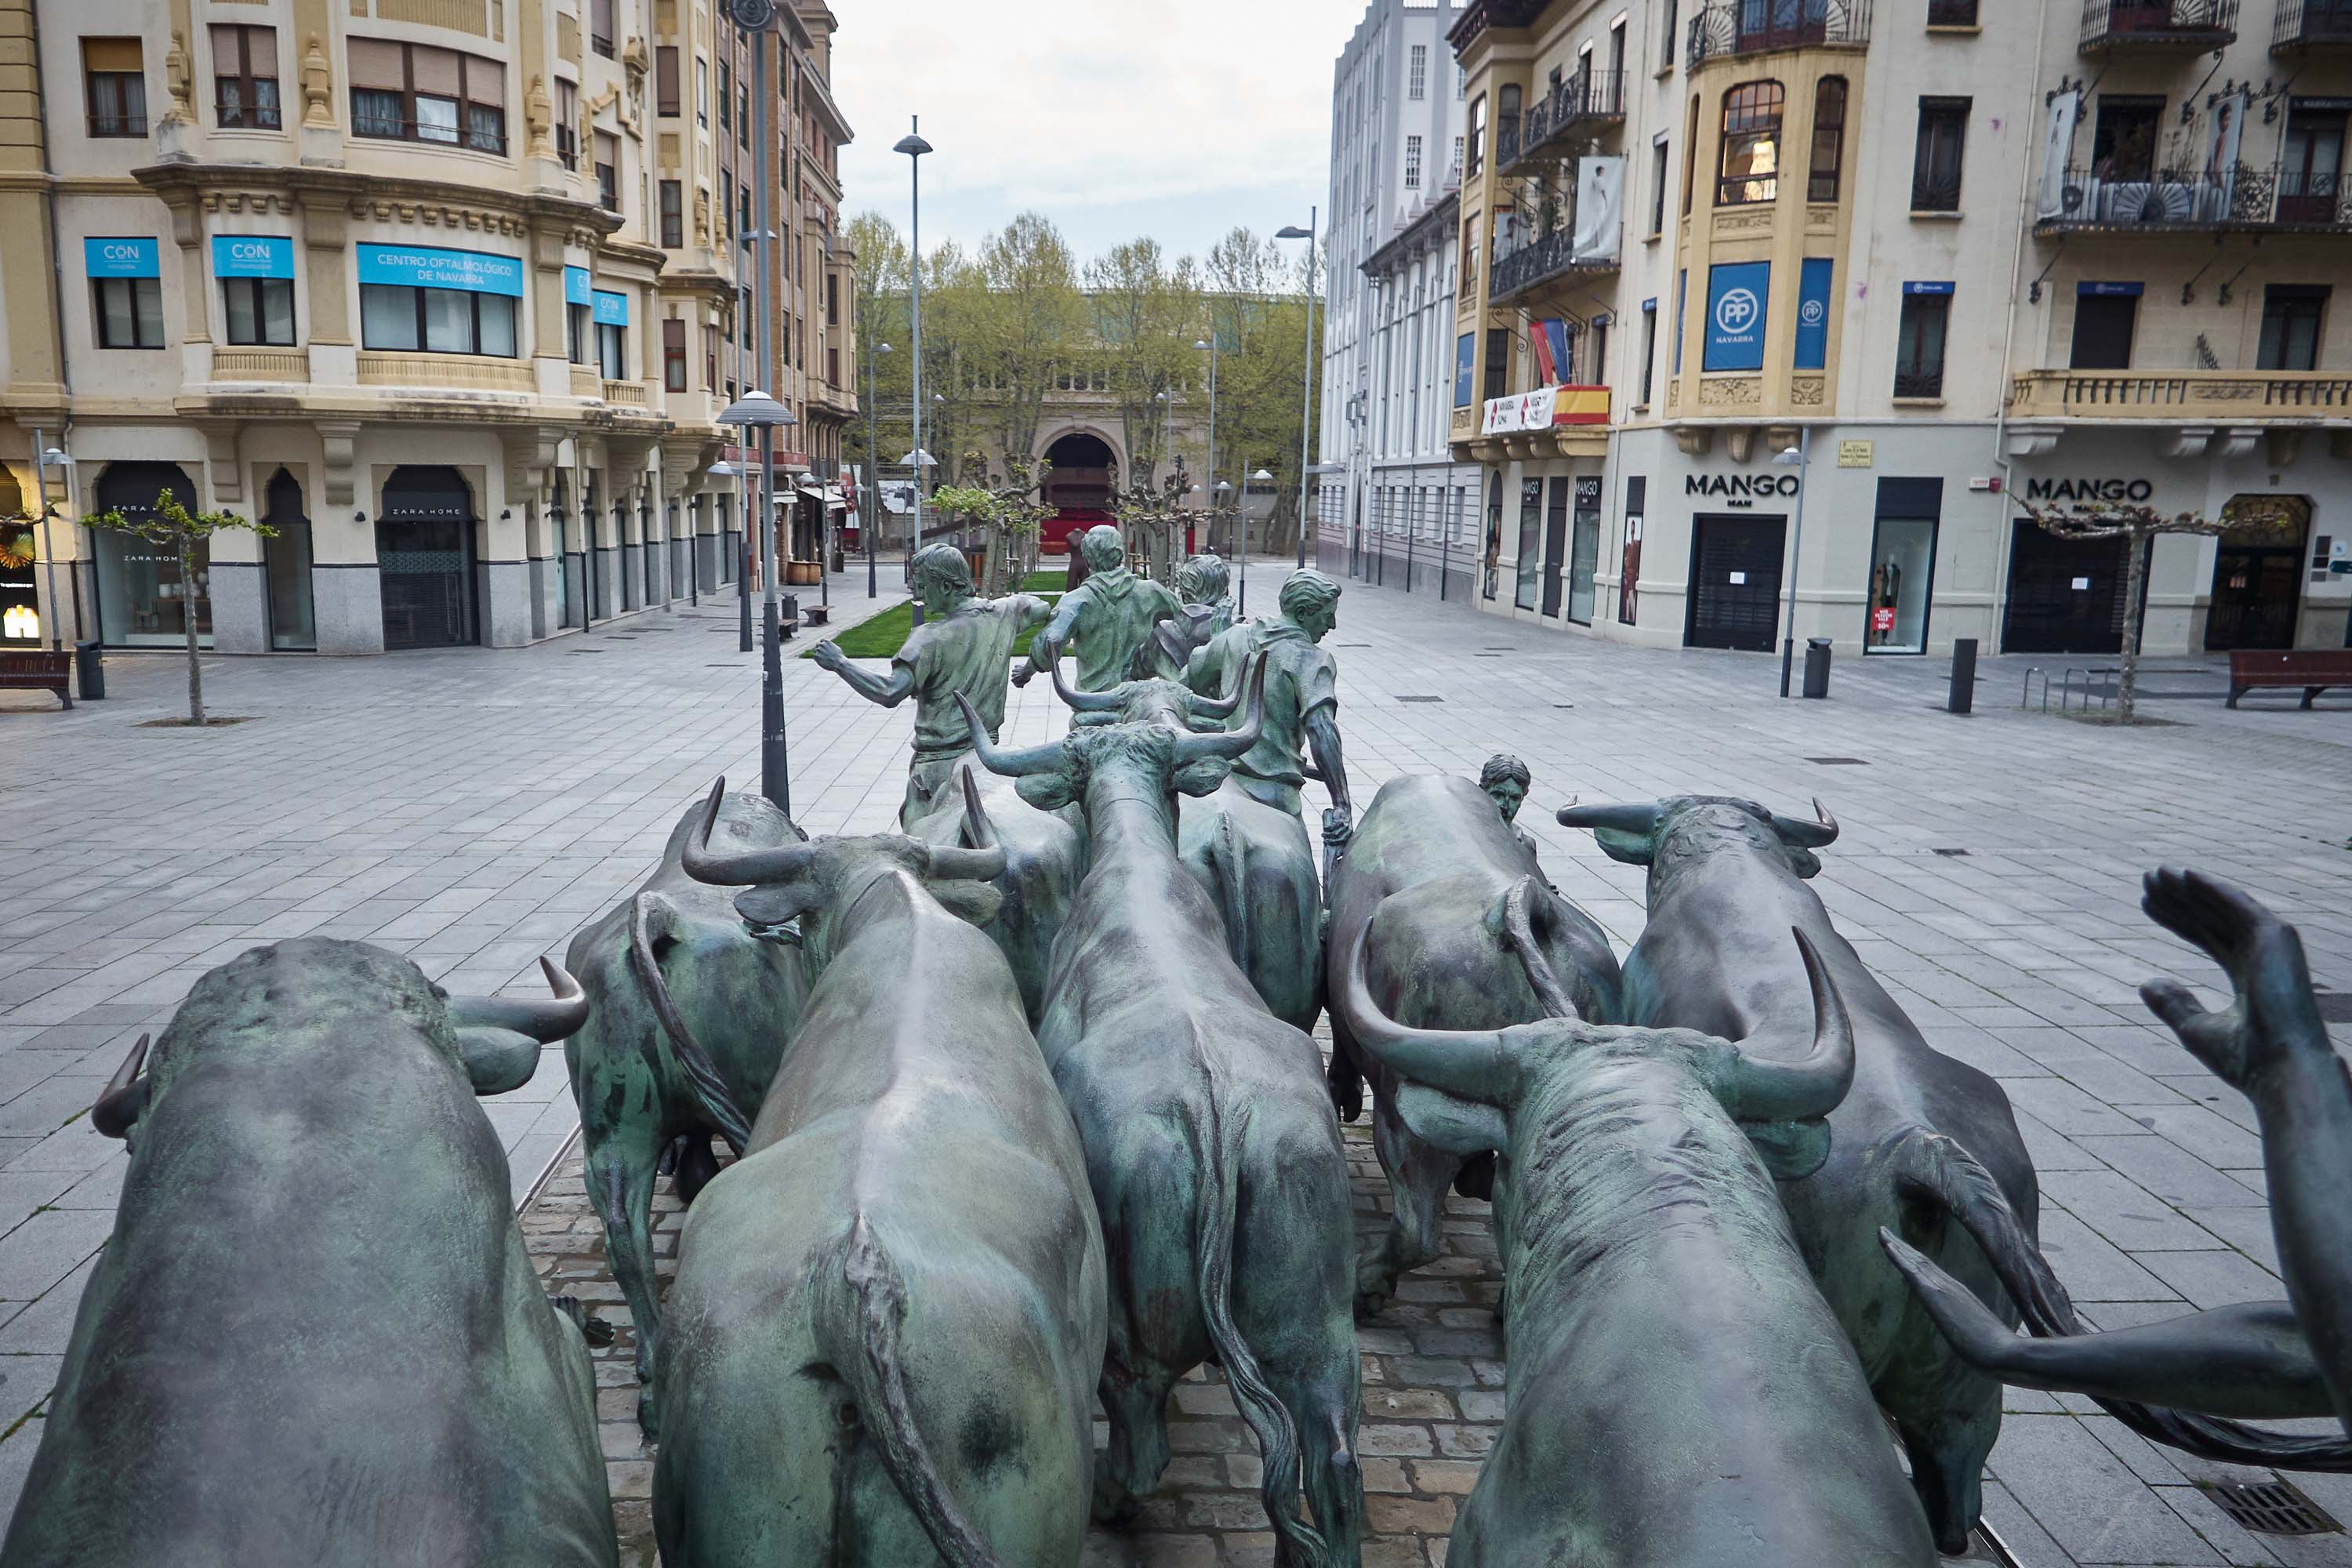 A monument to the San Fermin festival is pictured in Pamplona, Spain, on April 16.